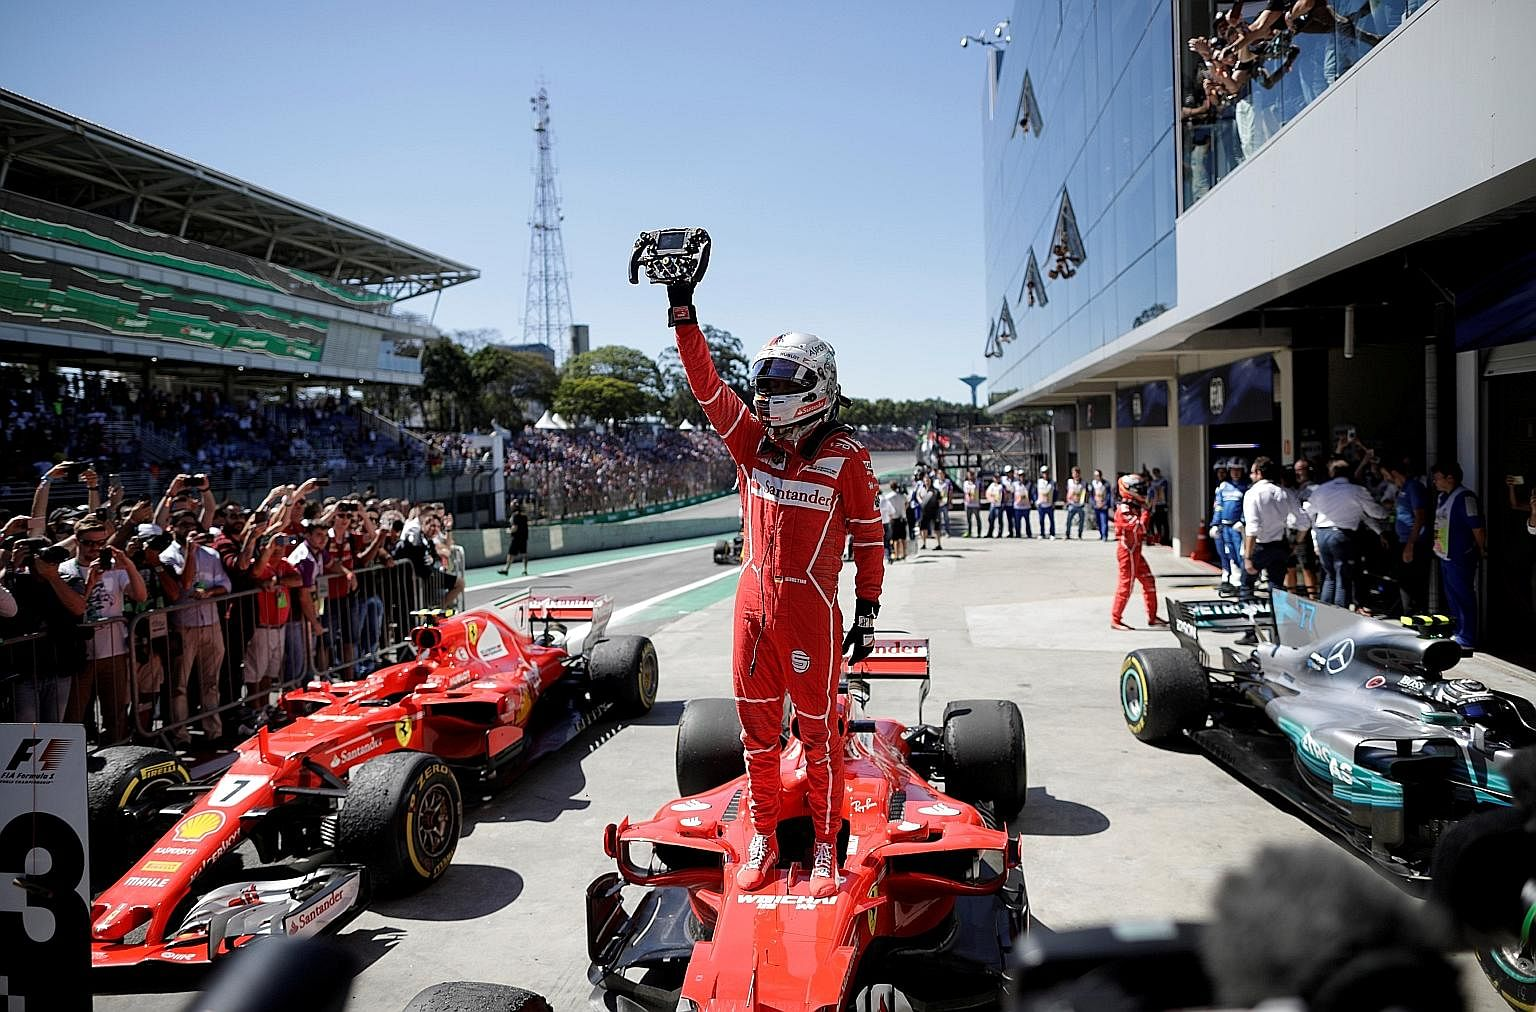 Sebastian Vettel of Ferrari holding up his steering wheel in triumph after winning the Brazilian Grand Prix on Sunday, his fifth win this season. Threats made by Ferrari chairman Sergio Marchionne to leave the sport were the talk of the paddock in Br